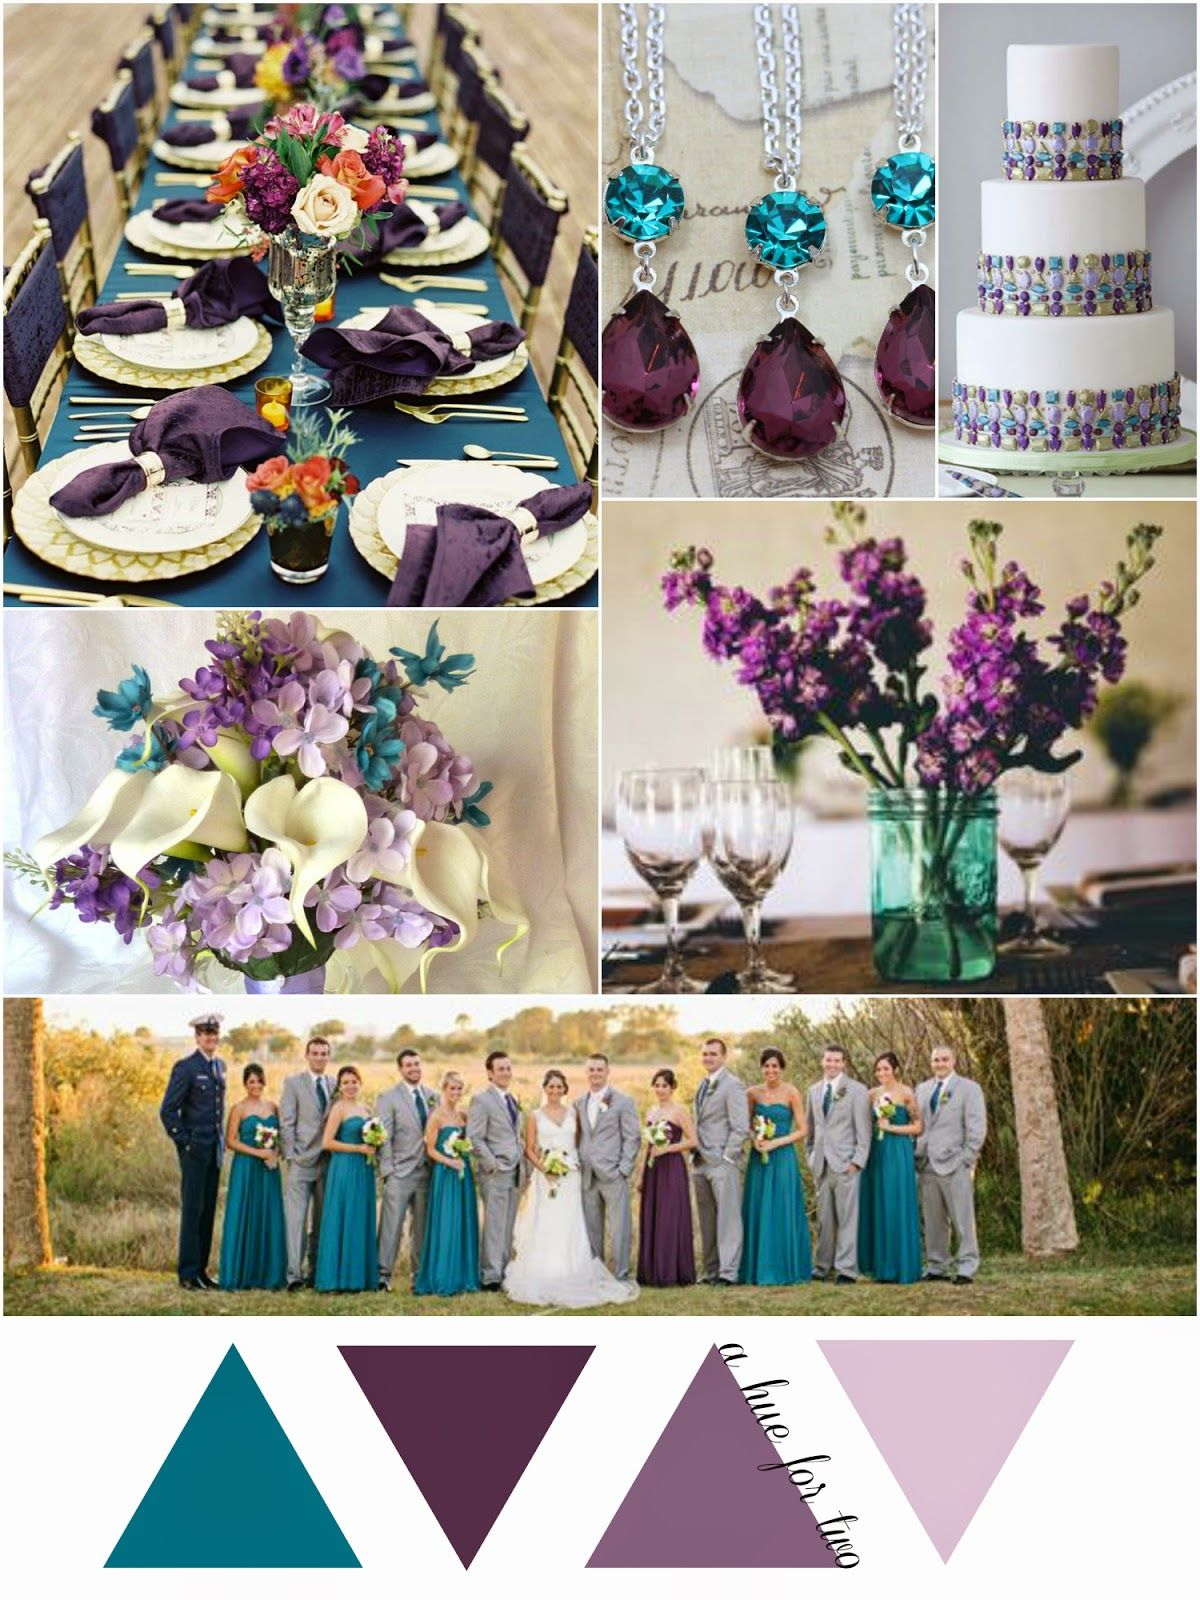 Teal, Eggplant and Lavender Early Fall Wedding A Hue For